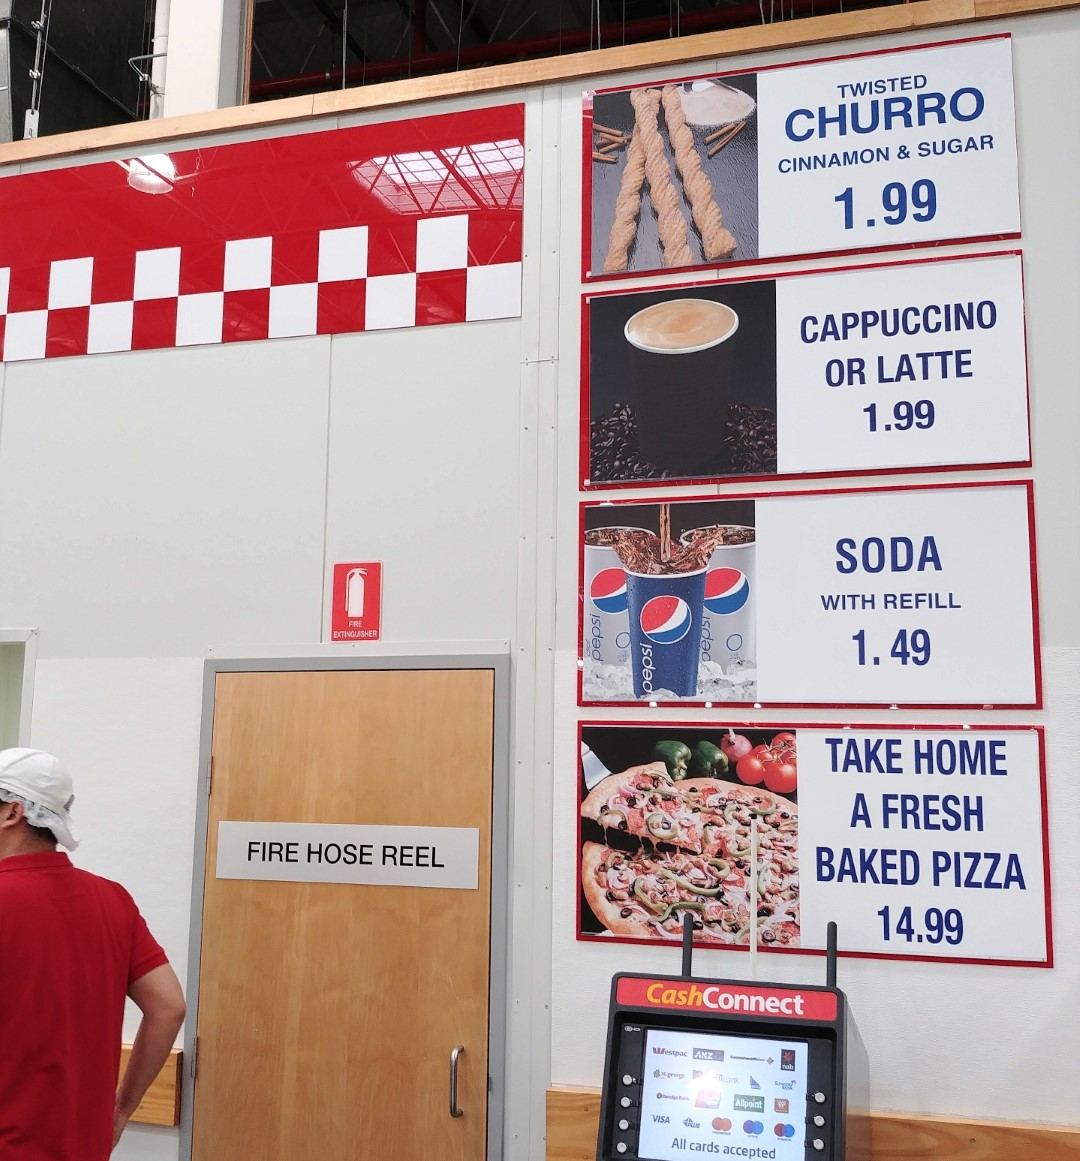 Costco Foodcourt Menu Australia 20 July 18 New Products Australia